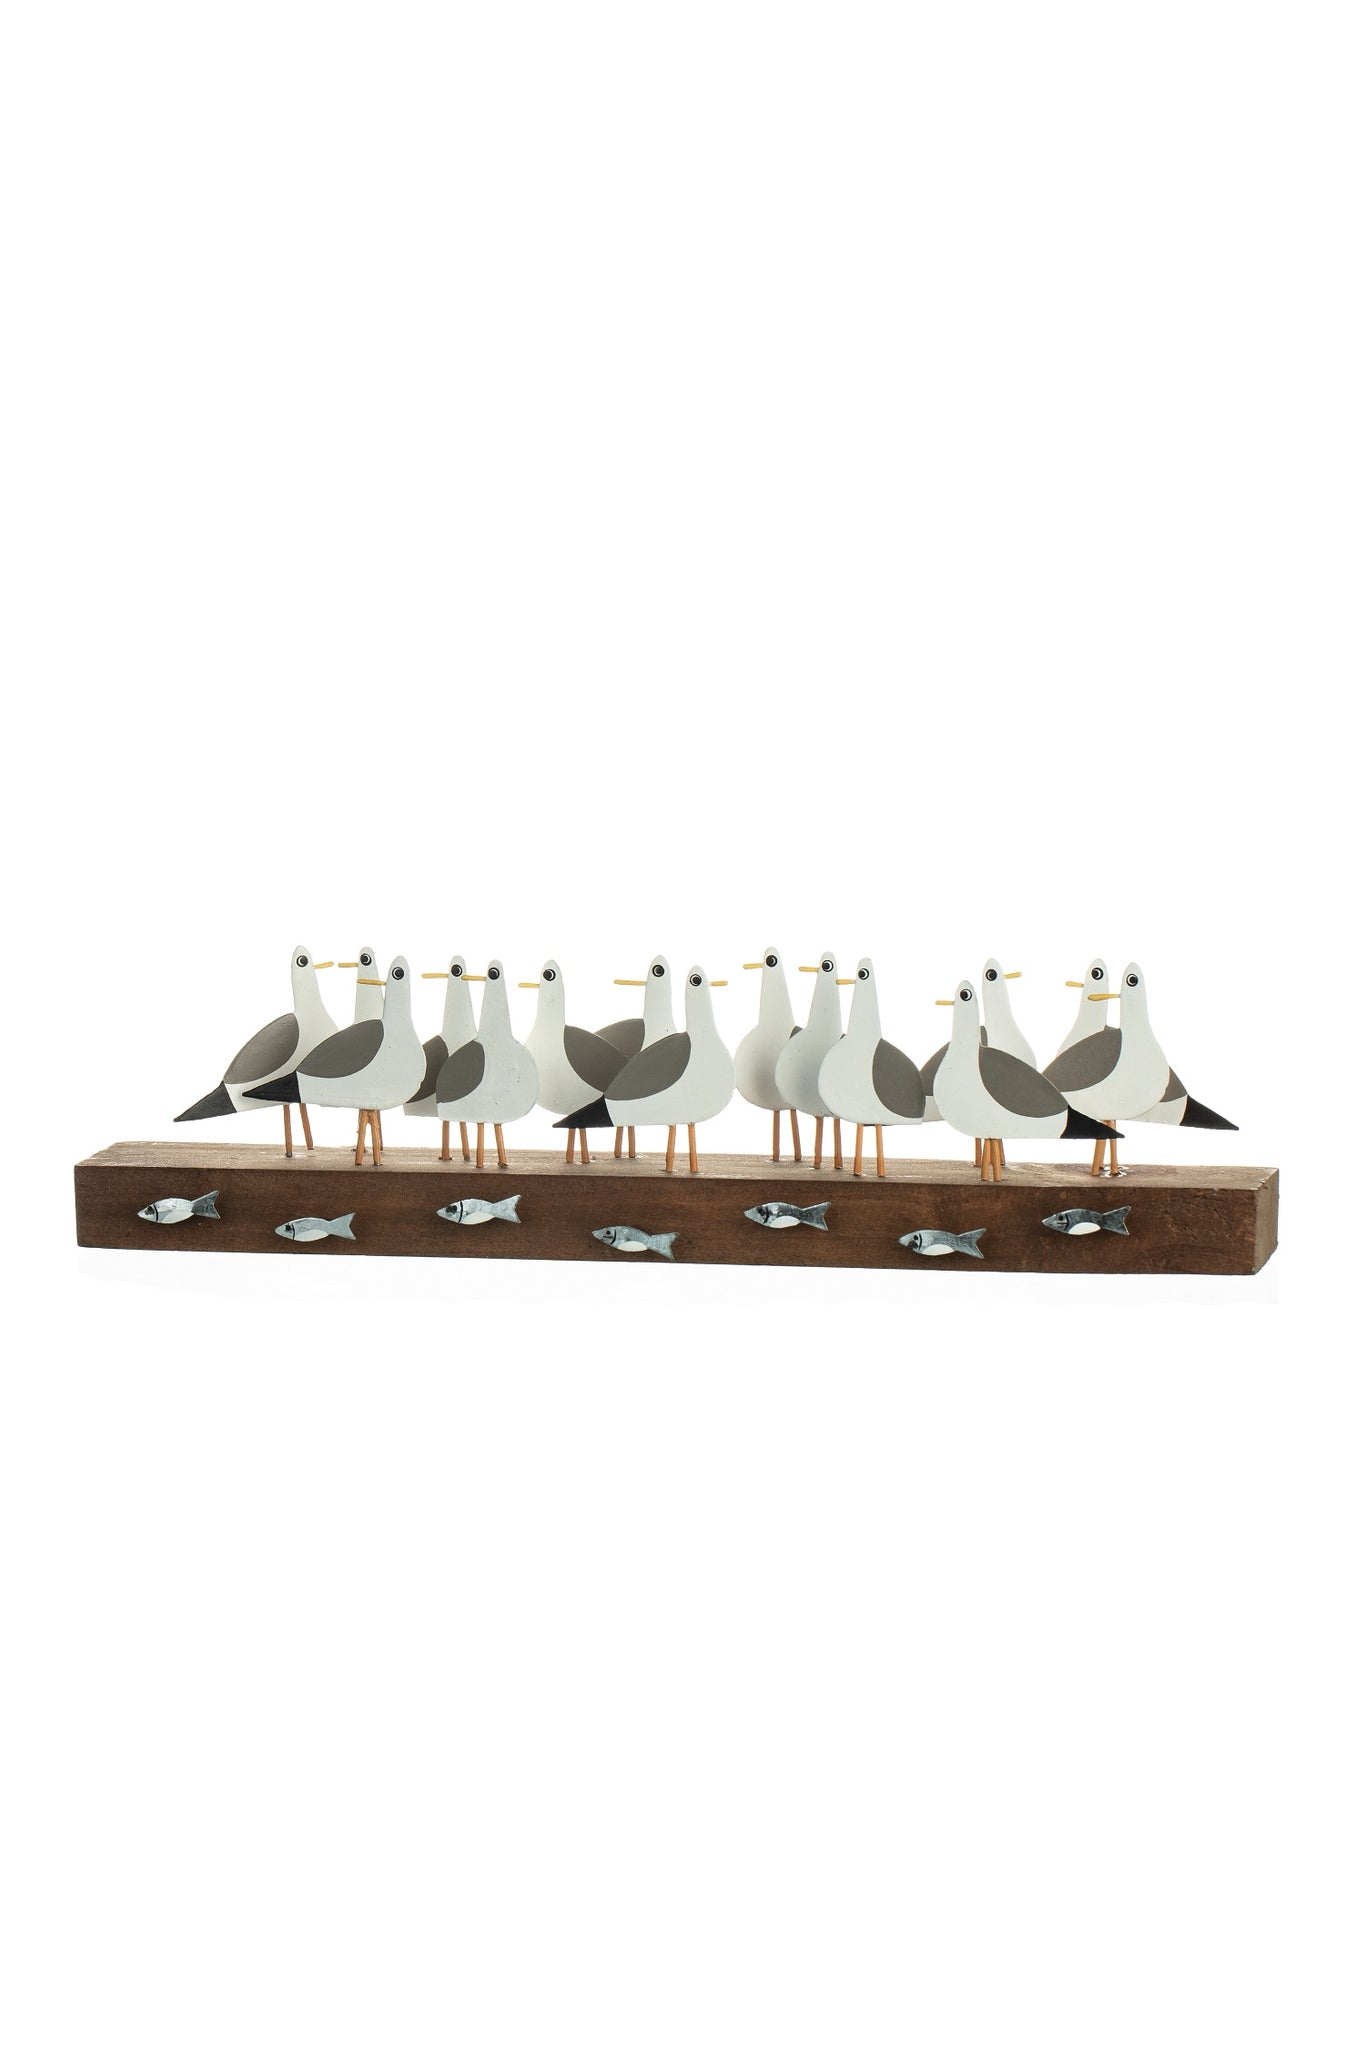 Row of Seagulls - Coastal decor item